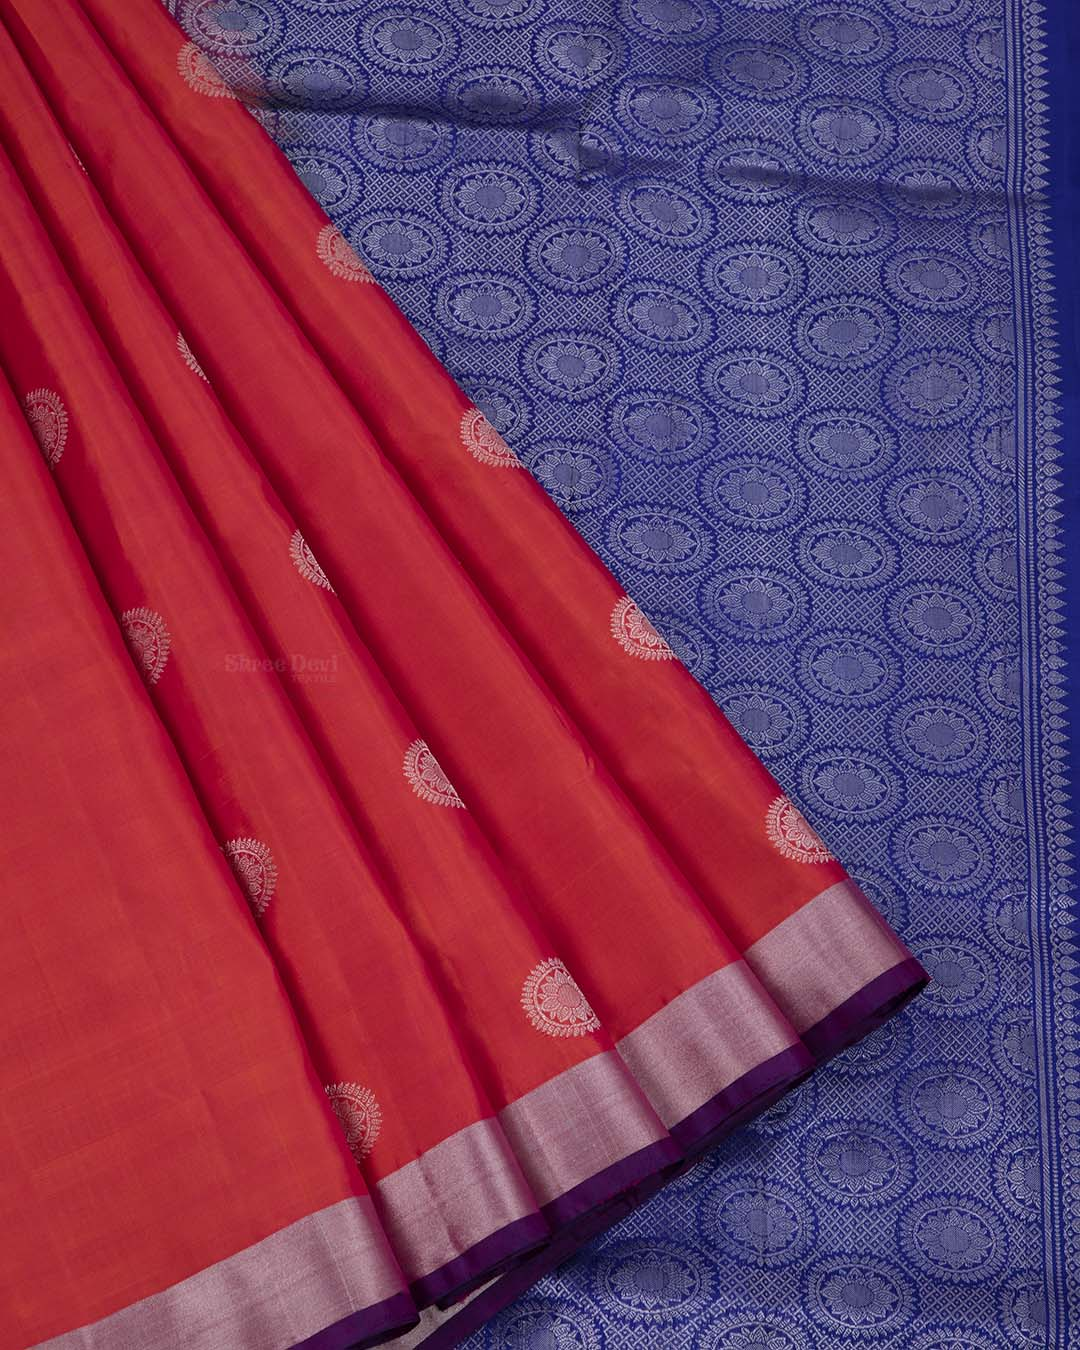 Red Orange Elite Motif Kancheevarams Silk Saree with Circle Floral Zari Motifs